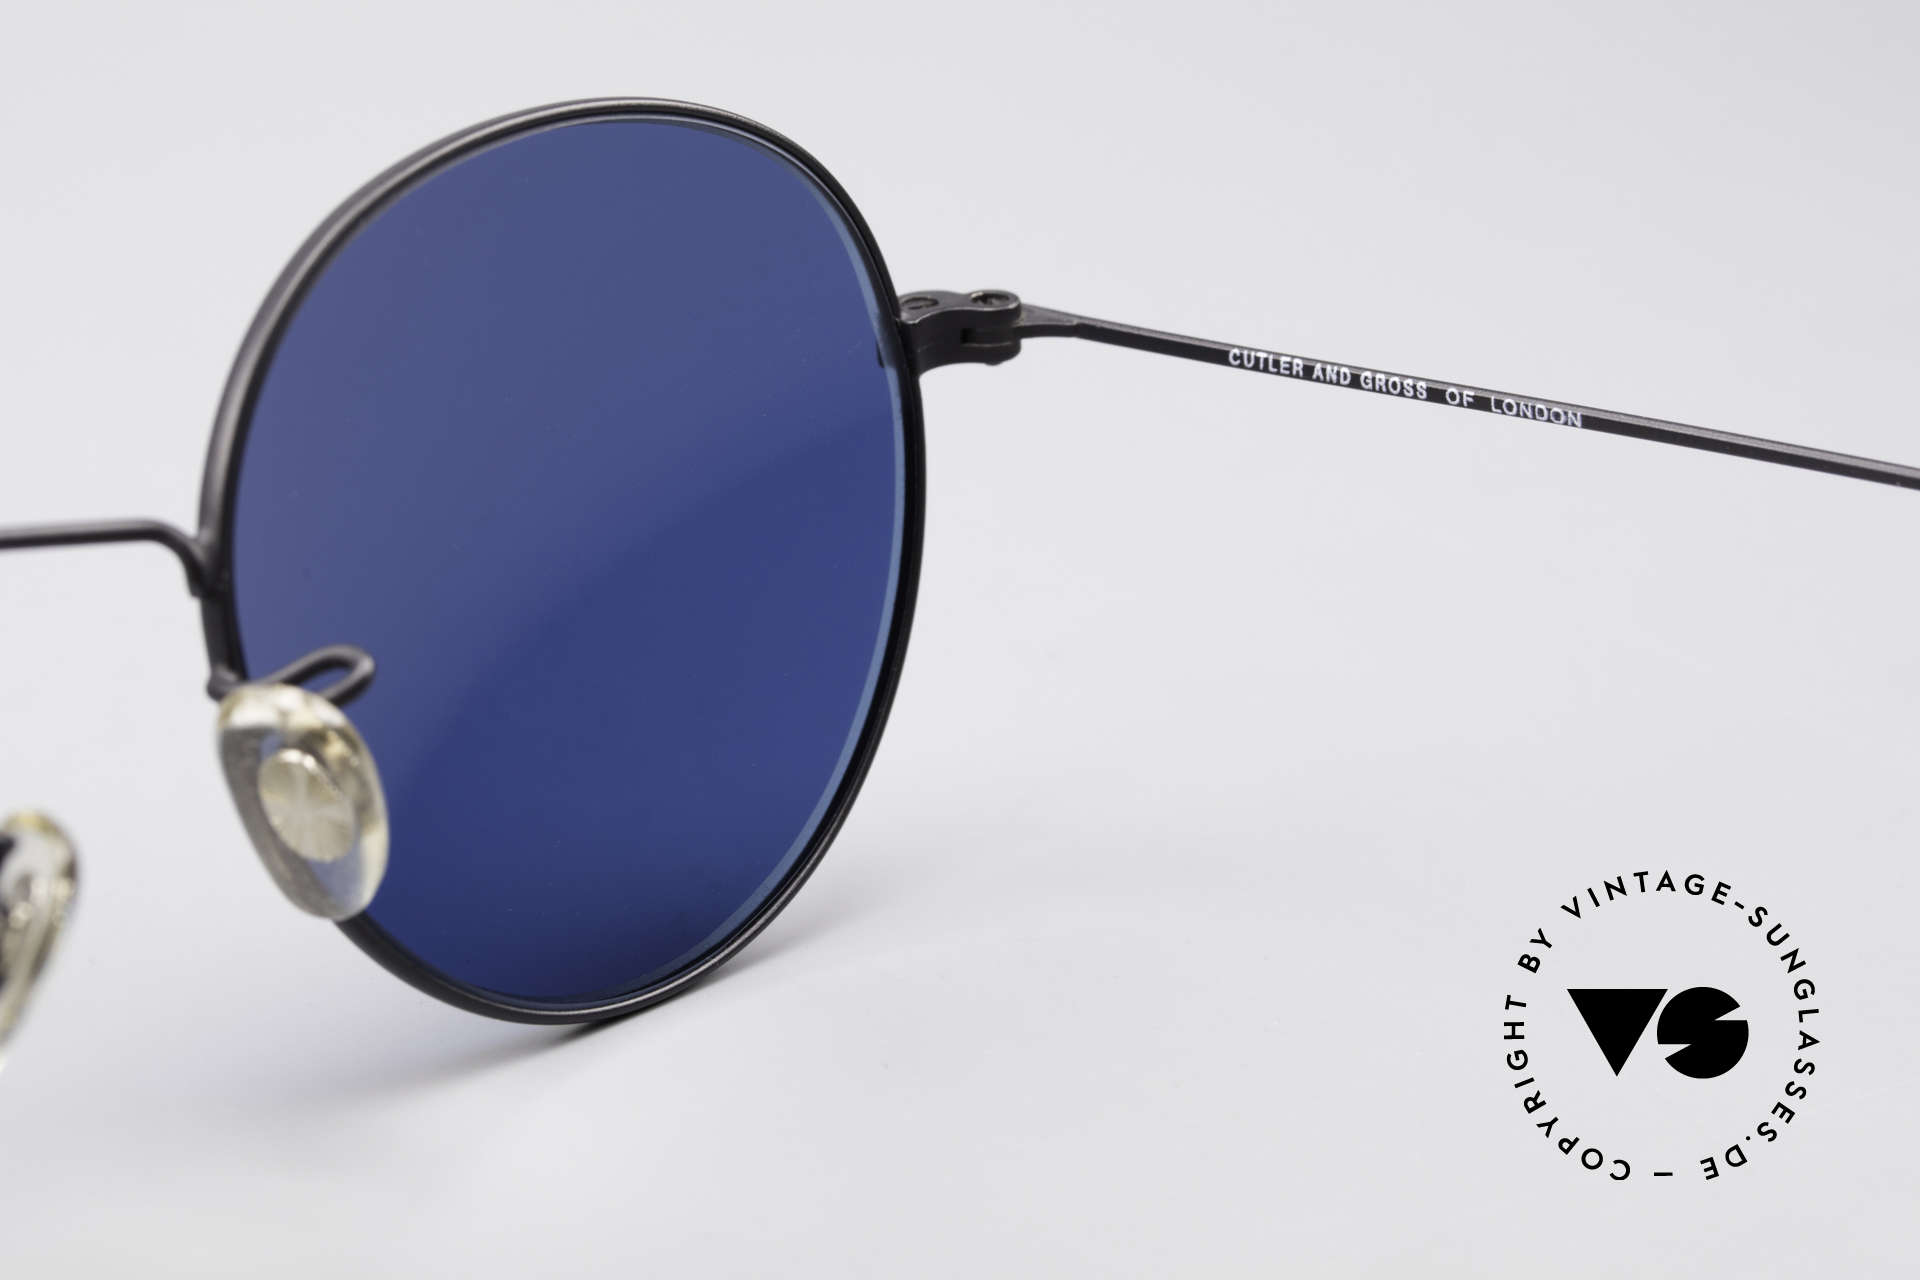 Cutler And Gross 0306 Round Vintage 90's Sunglasses, never worn; like all our vintage Cutler & Gross eyewear, Made for Men and Women